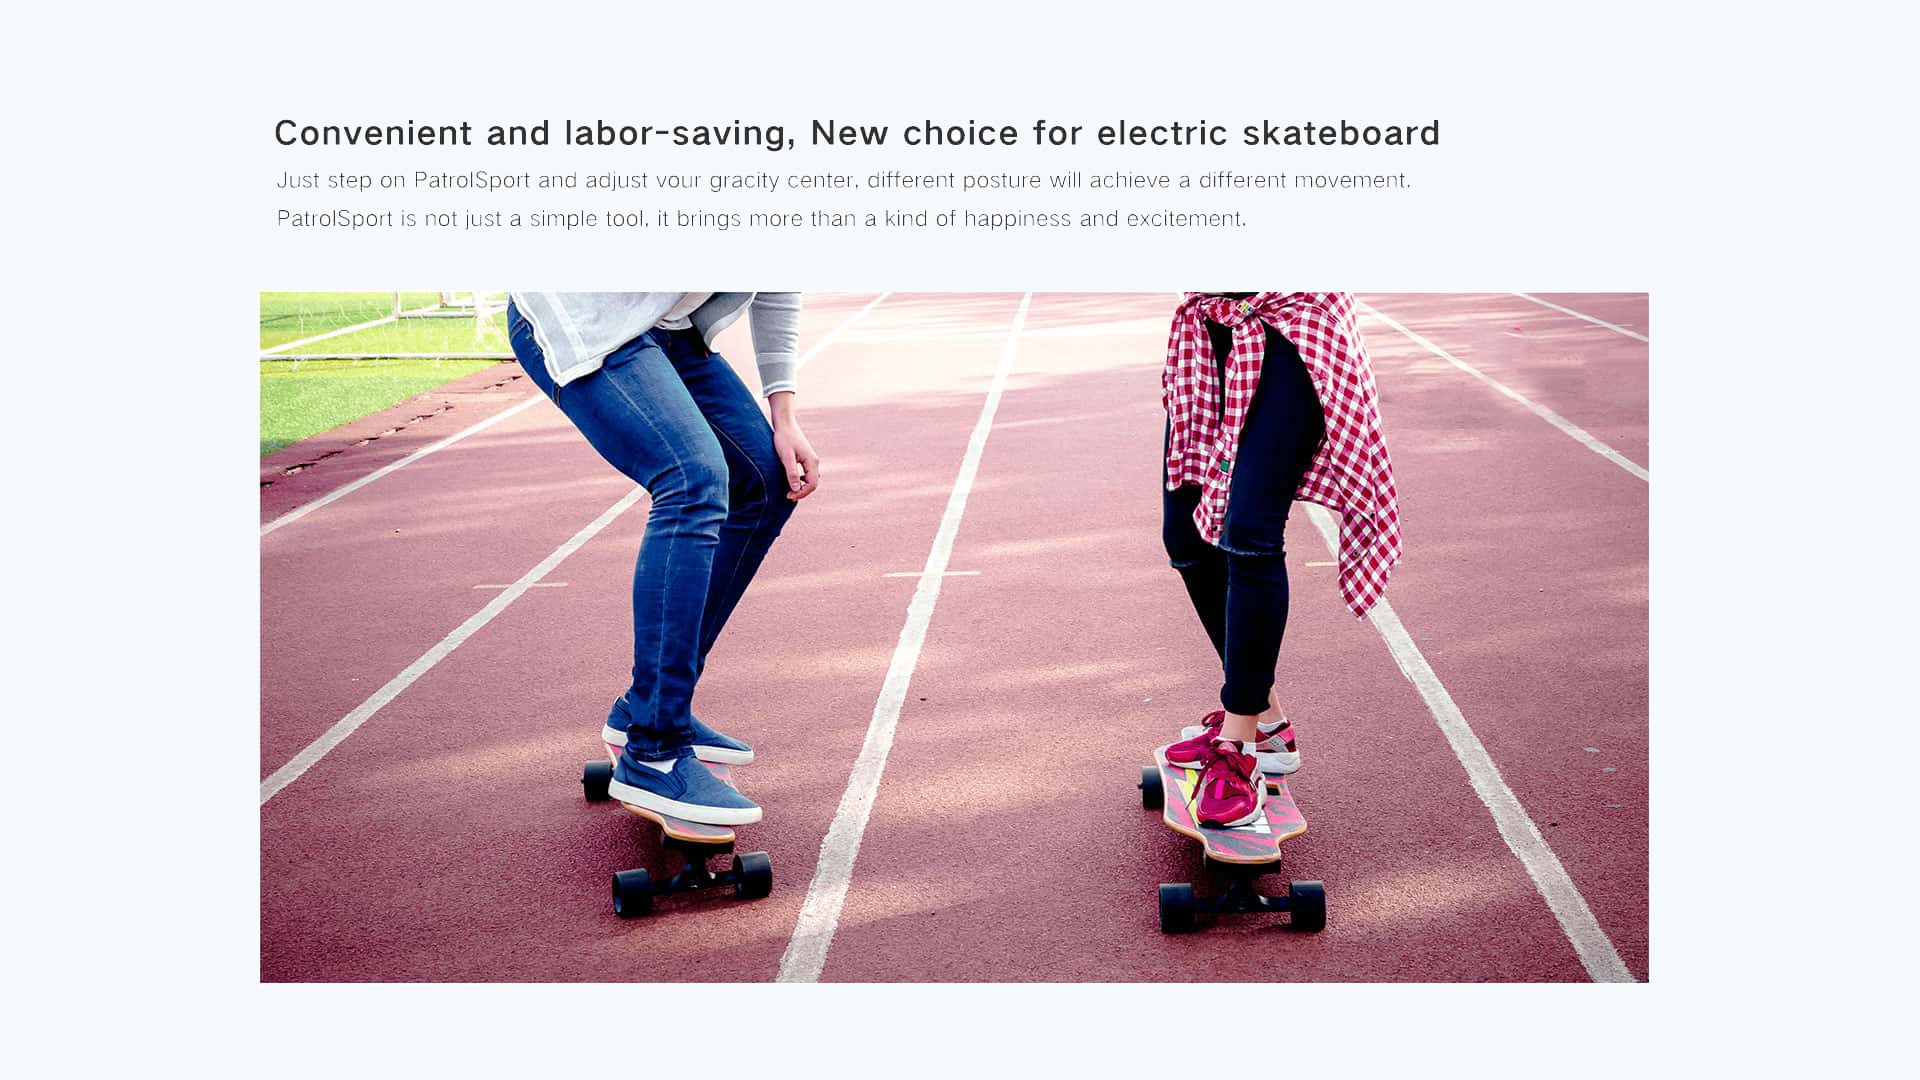 man and woman is riding two skateboards